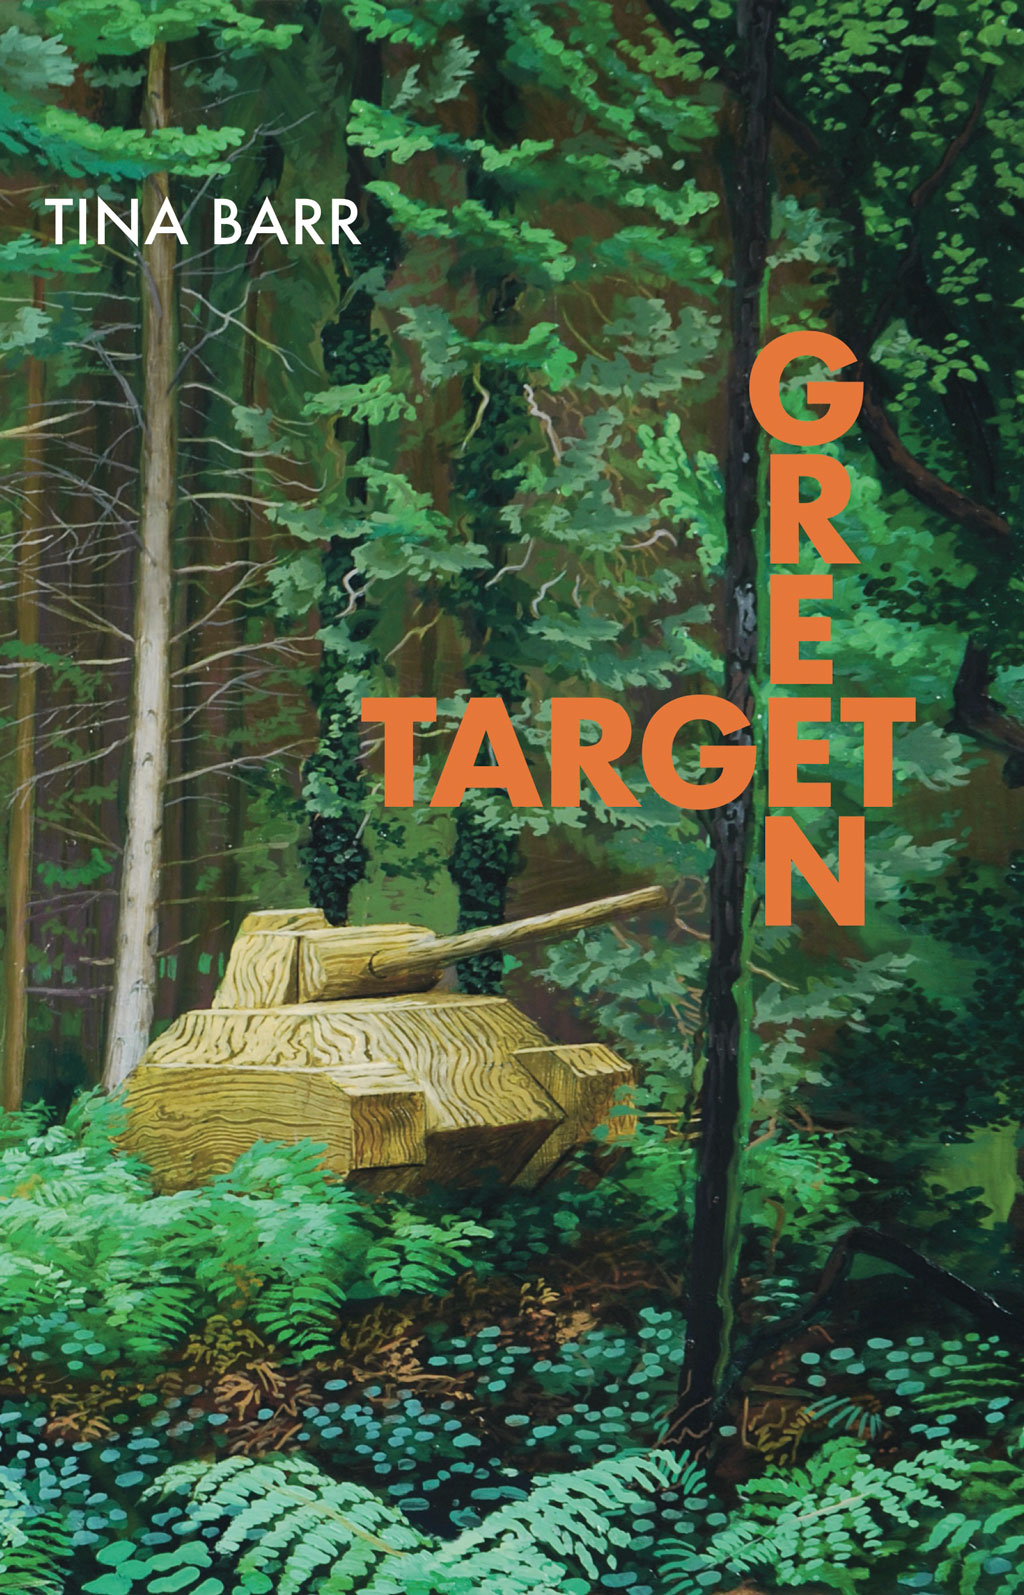 Jacket cover for GREEN TARGET; wooden tank in green forrest